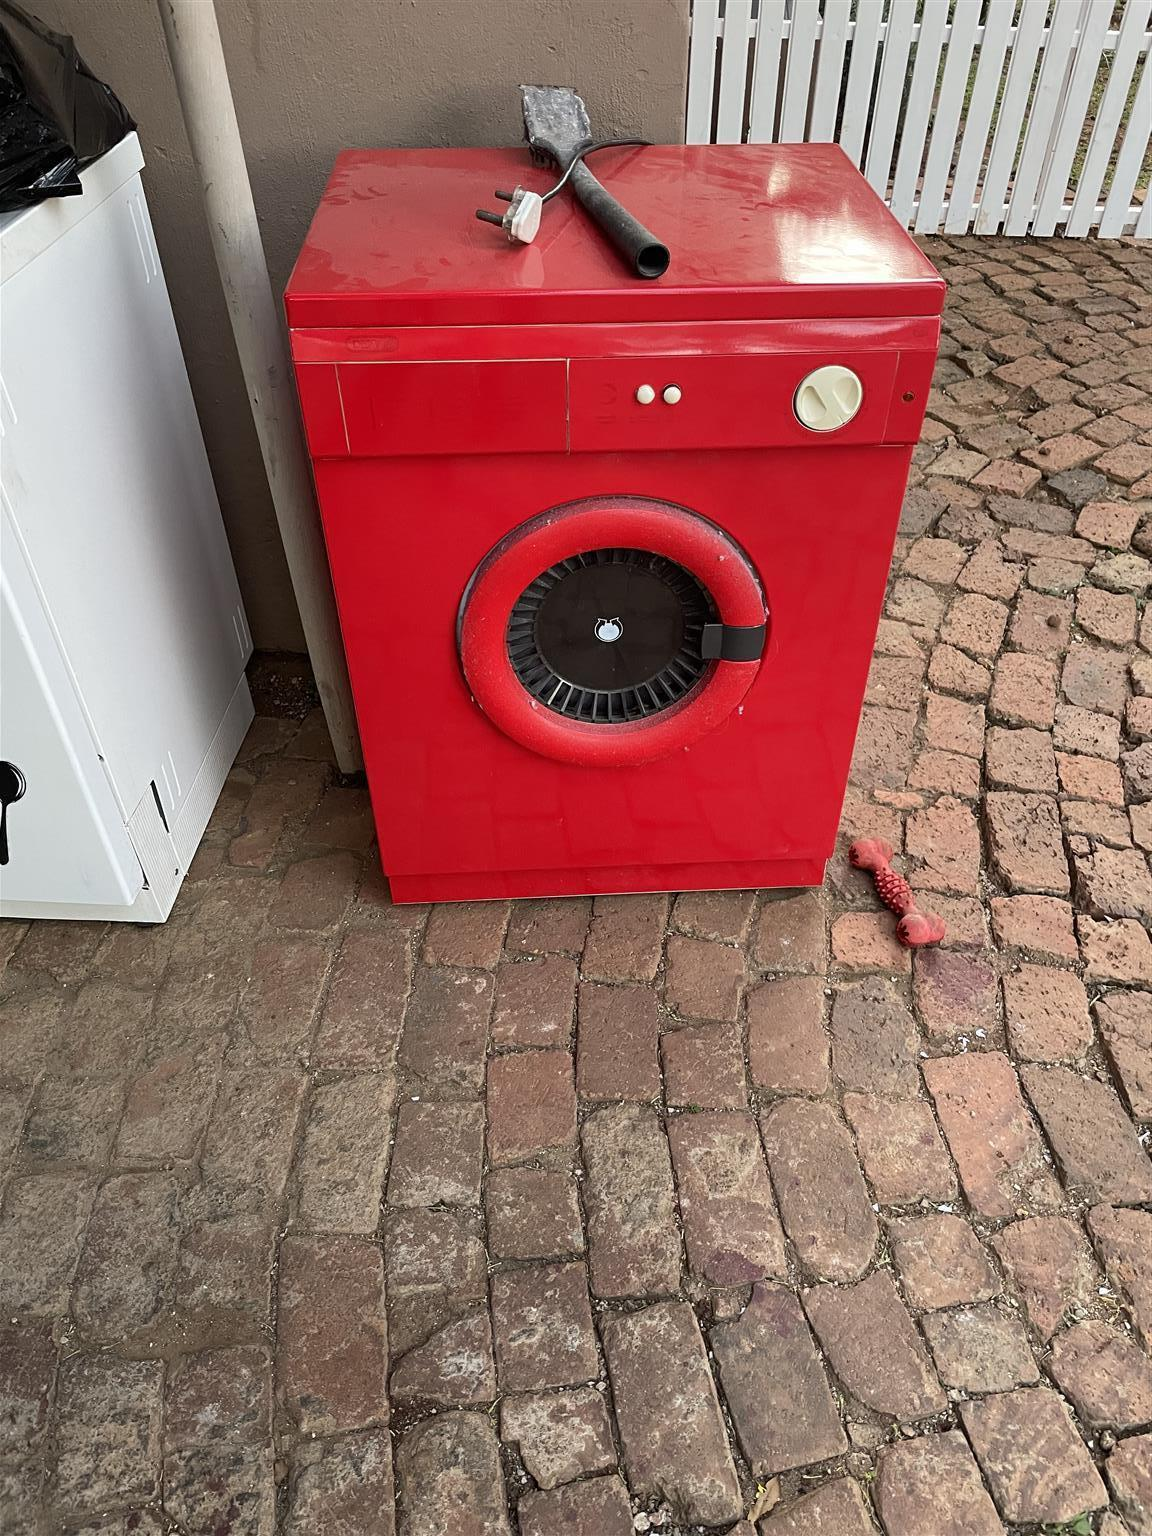 Tumble dryer red wrapped